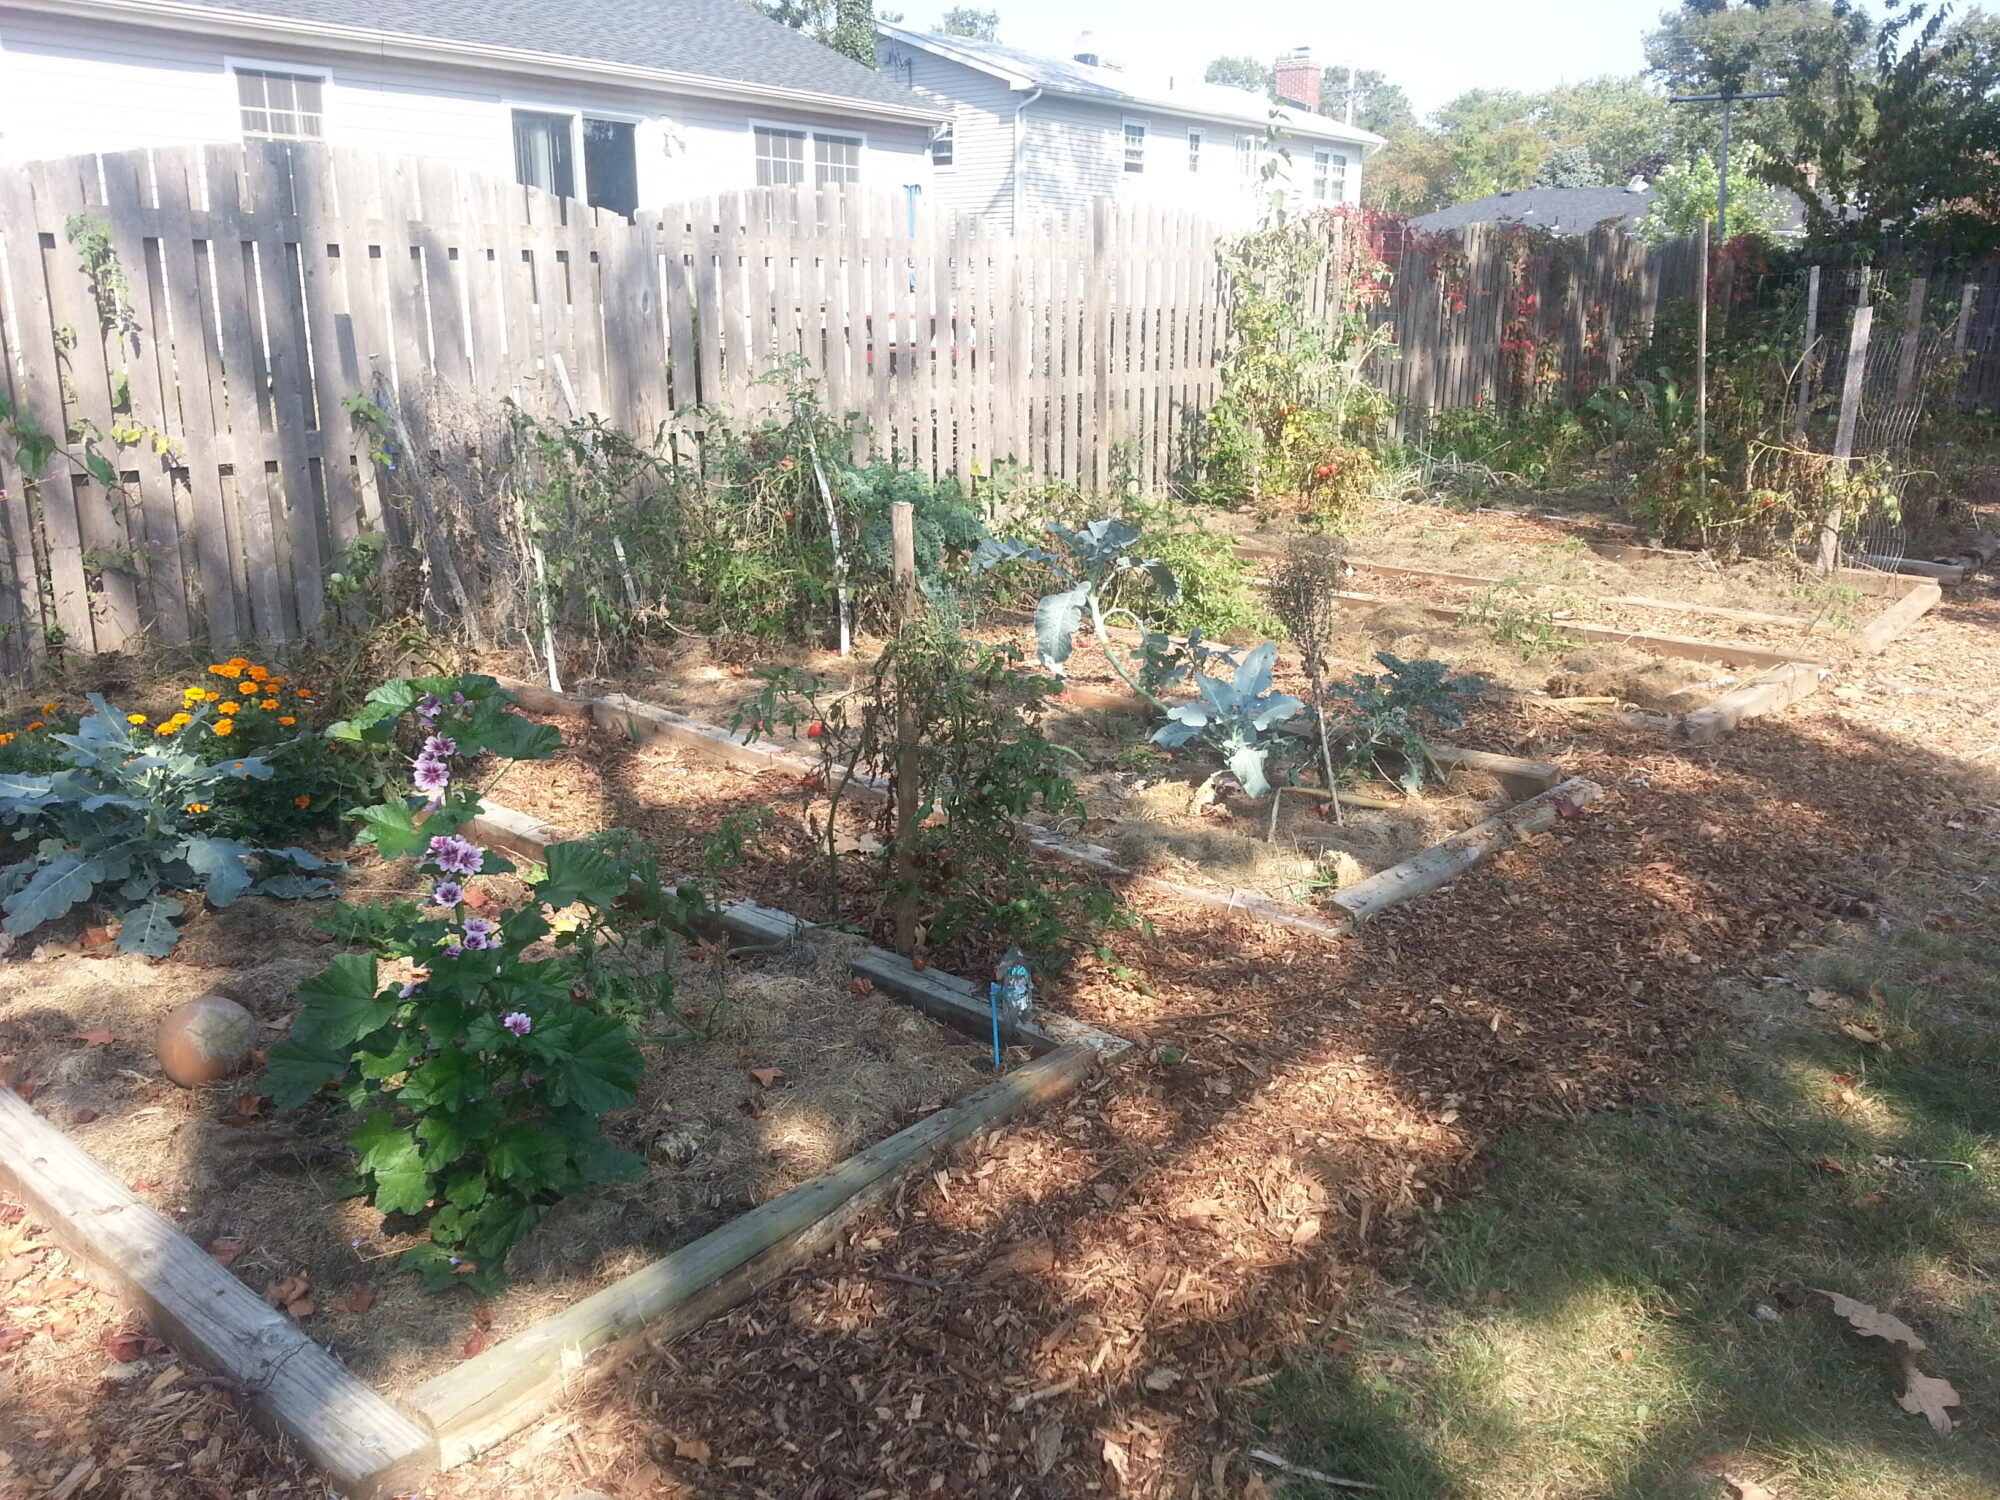 garden layout changes and setting up the greenhouse for cool